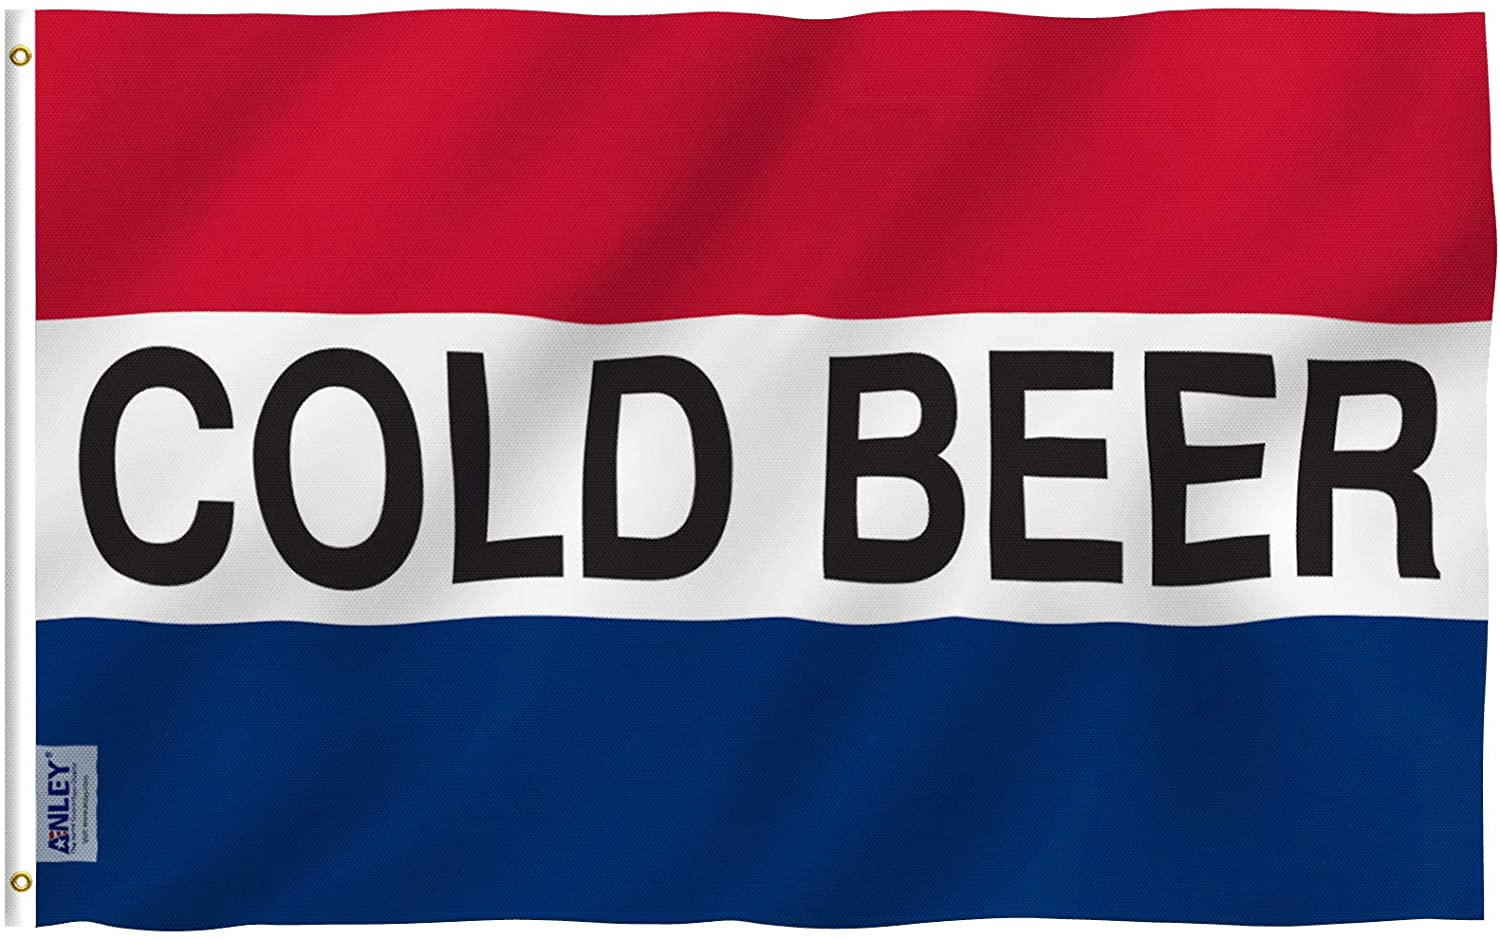 Anley Fly Breeze 3x5 Foot Cold Beer Flag - Vivid Color and UV Fade Resistant - Canvas Header and Double Stitched - Advertising Beer Flags Polyester with Brass Grommets 3 X 5 Ft